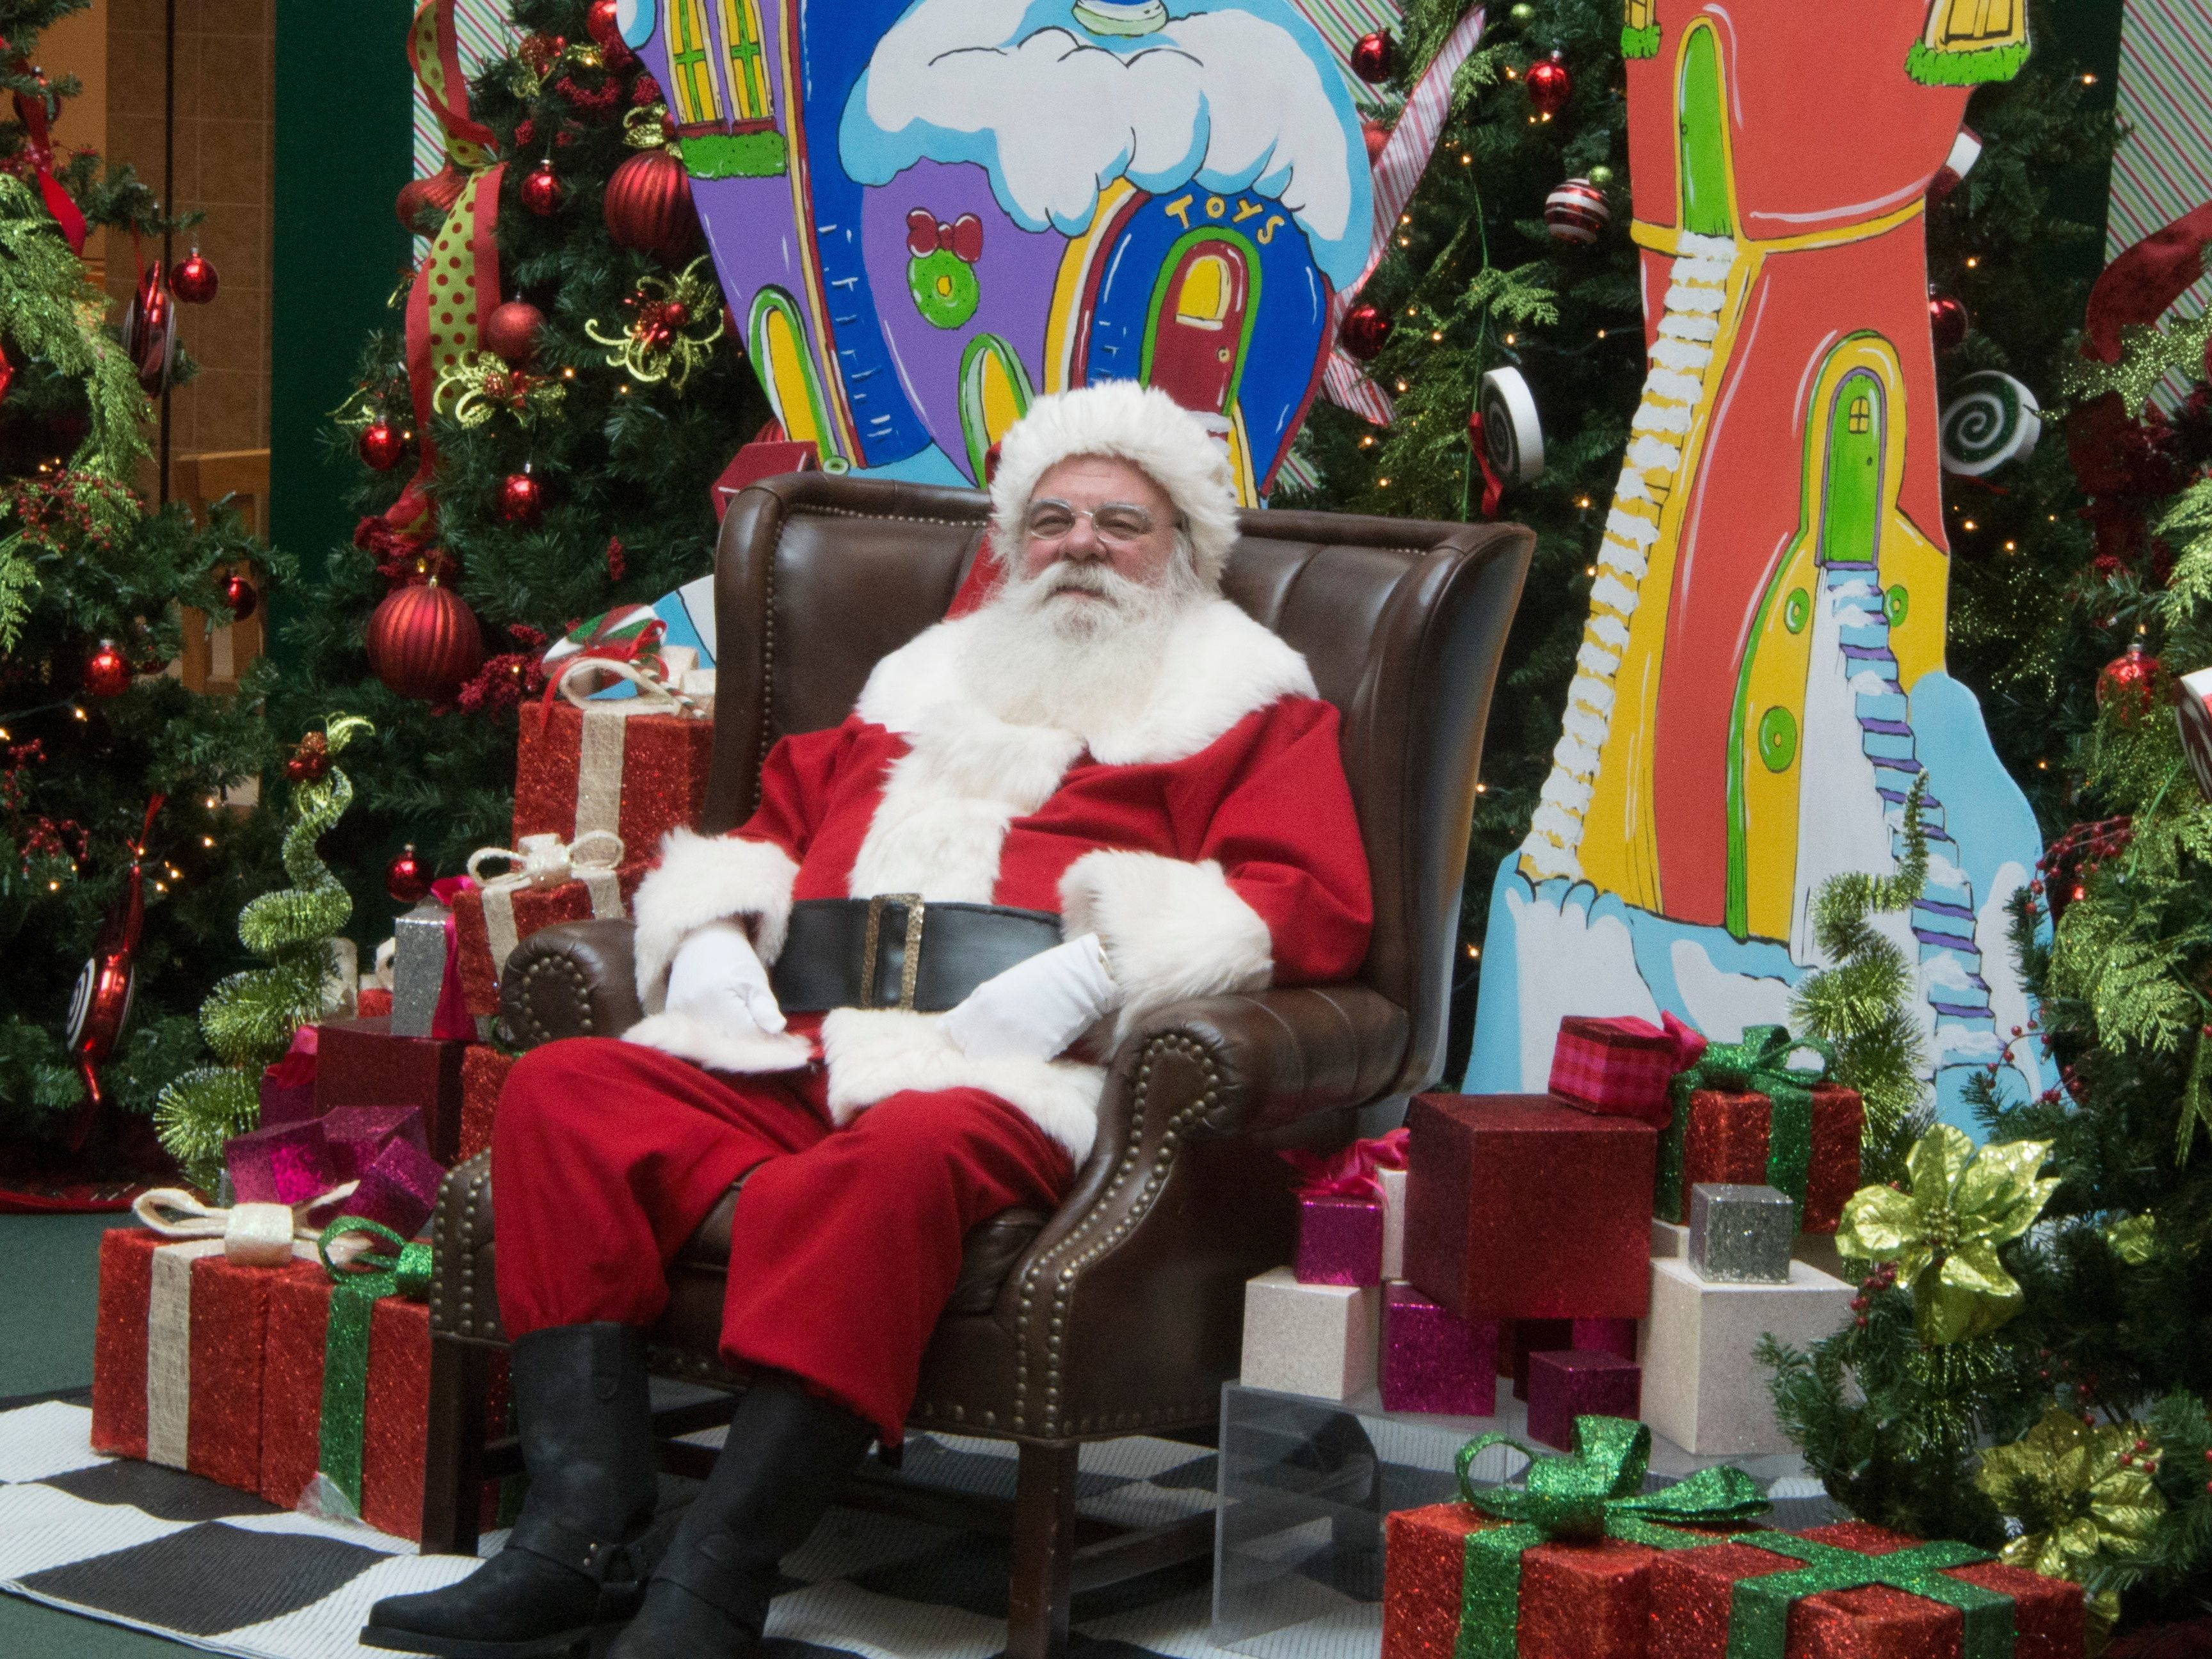 Santa Claus awaits his next visitor at the Oakdale Mall in Johnson City on  Dec. 13, 2017.